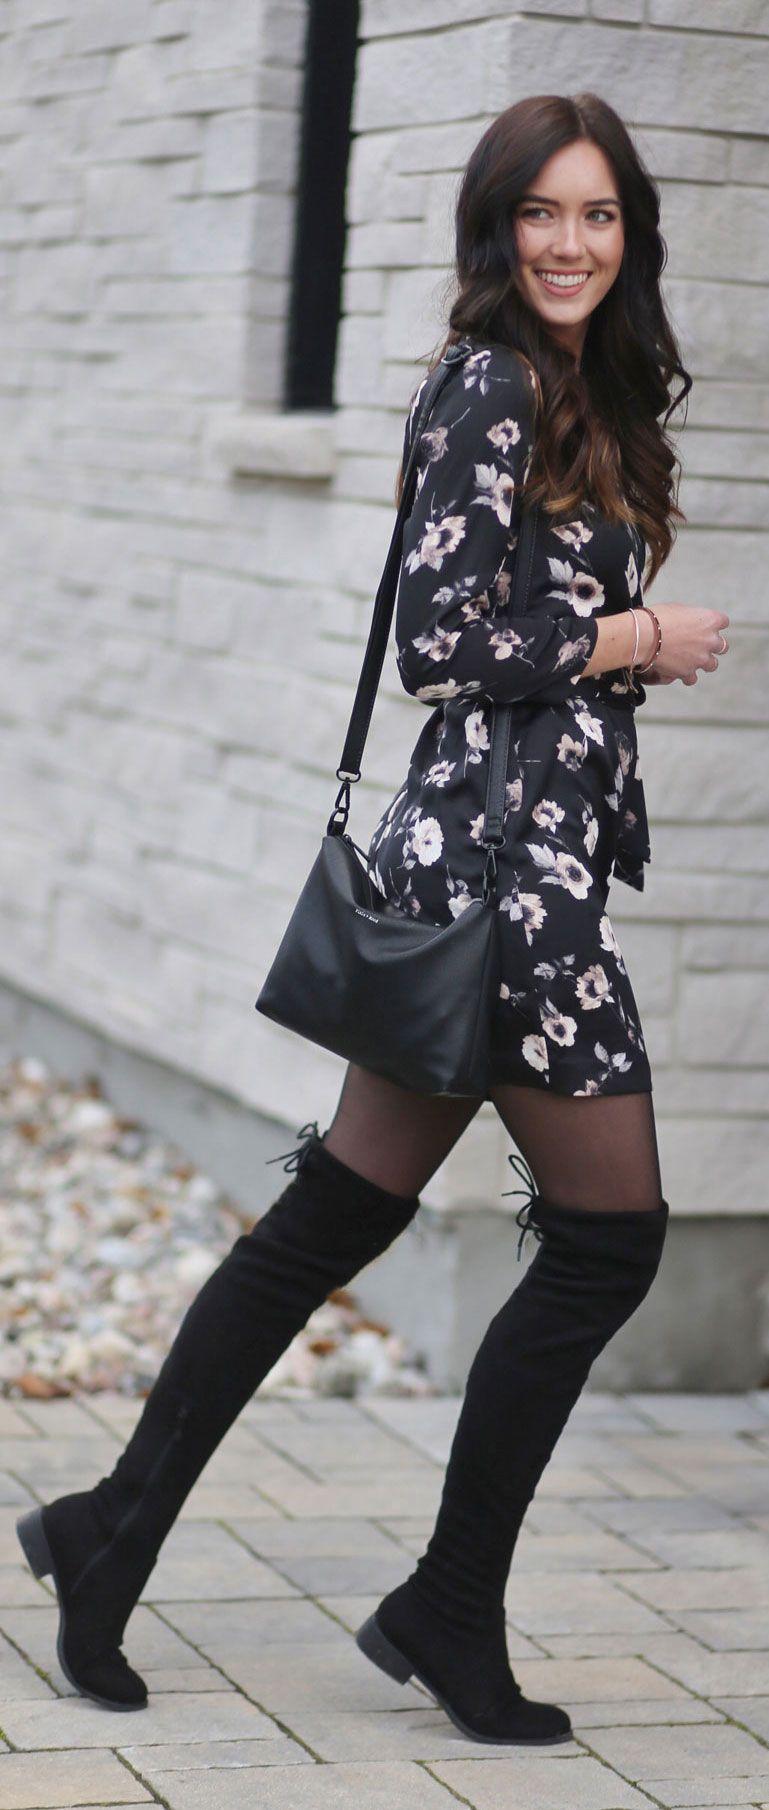 Fall S Biggest Trends 7 Satin Dress Marie S Bazaar High Knee Boots Outfit Fashion Knee Boots Outfit [ 1810 x 769 Pixel ]